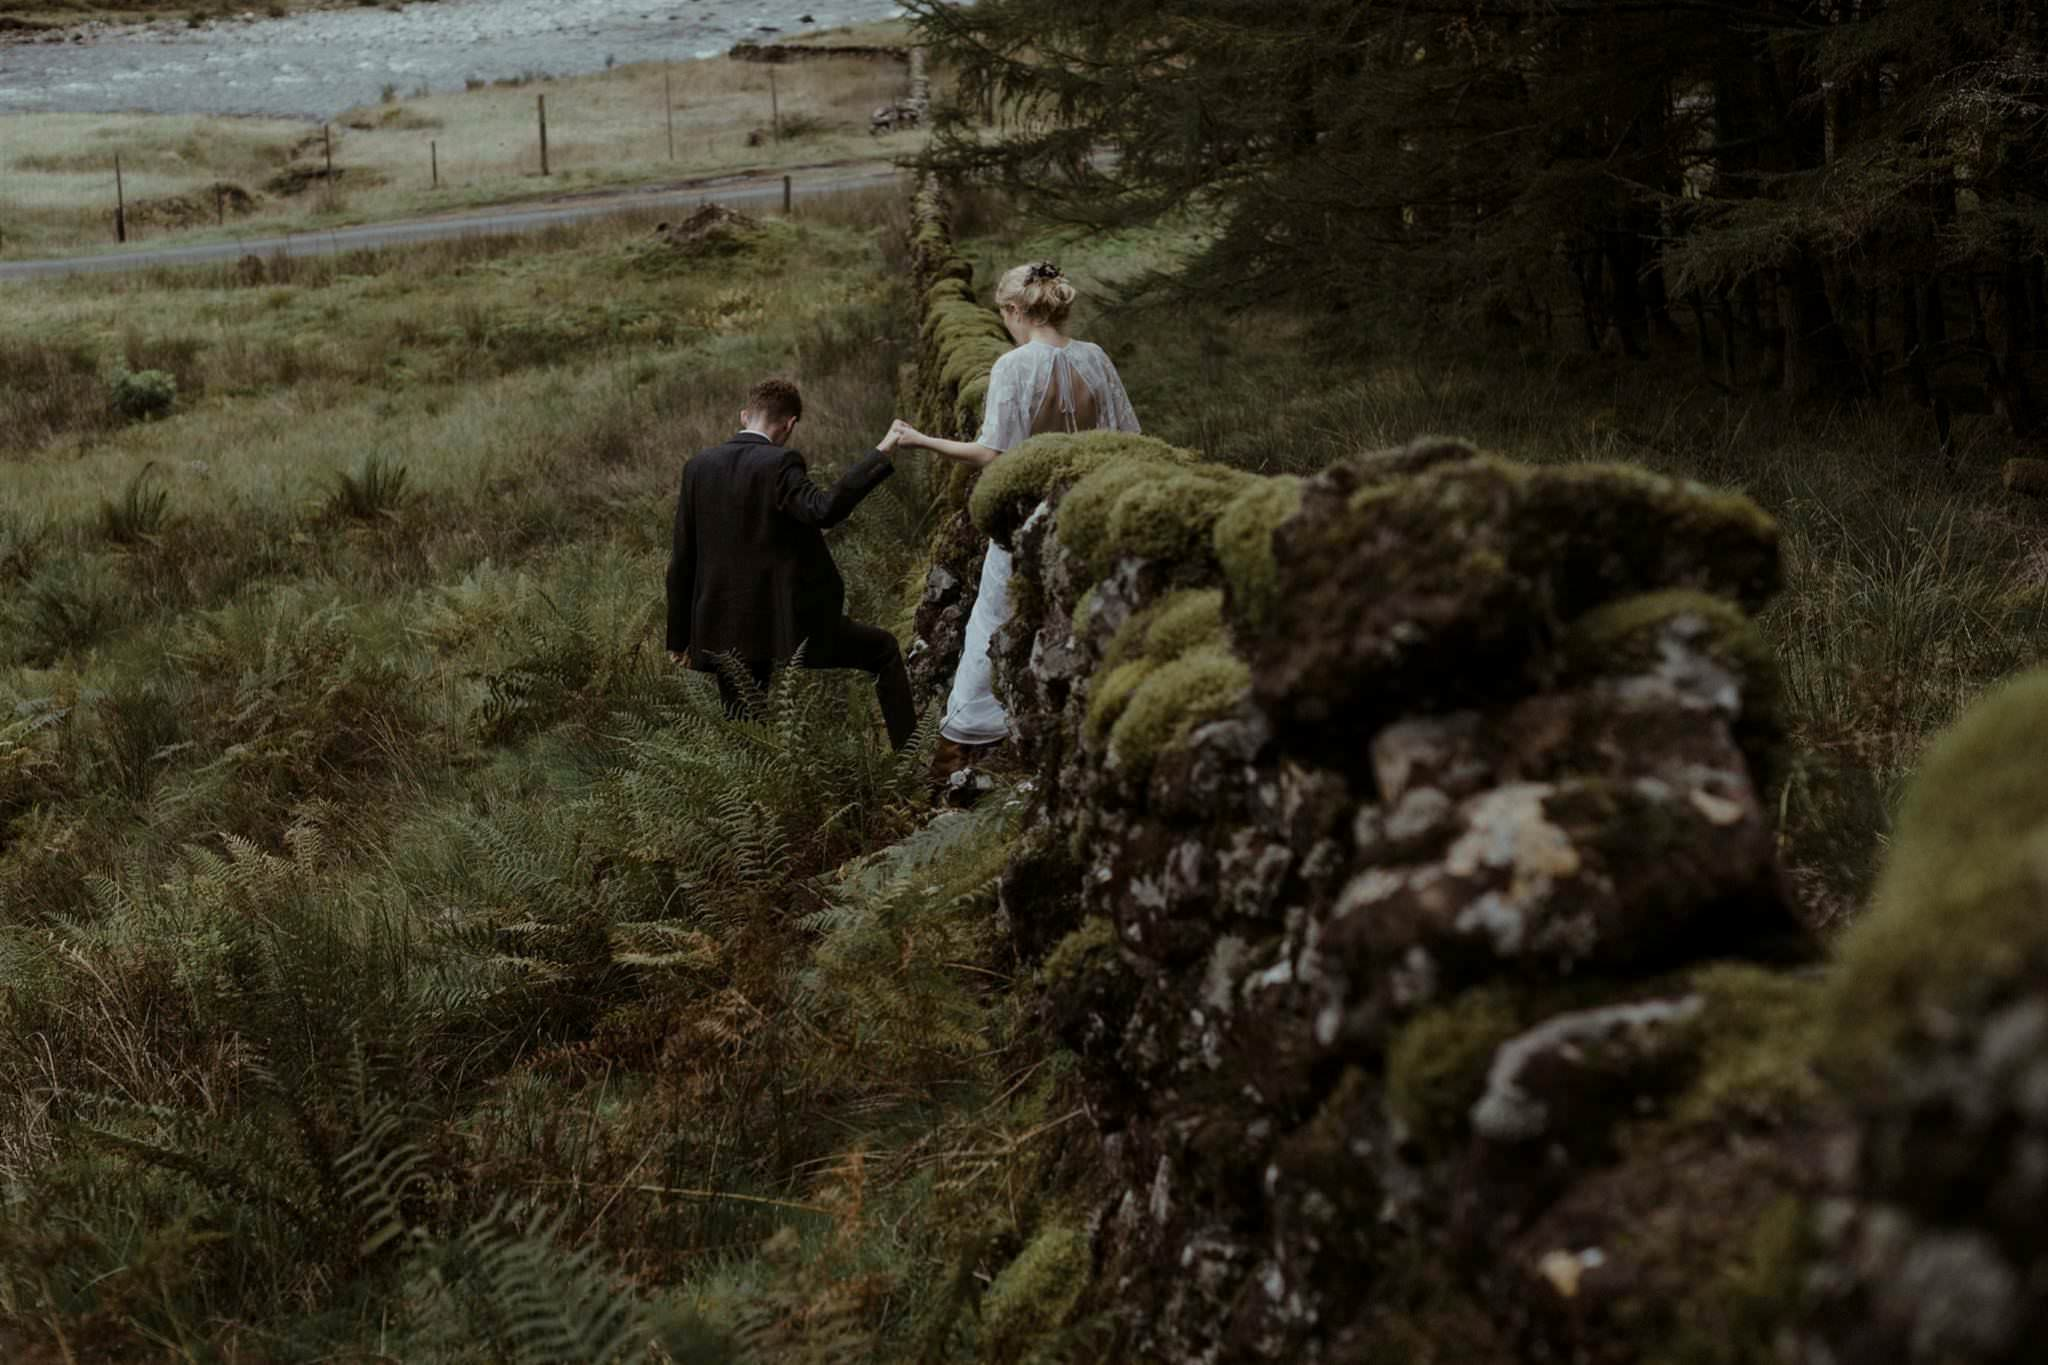 Groom helps bride over a wall in Glen Etive after their wedding for two in Scotland